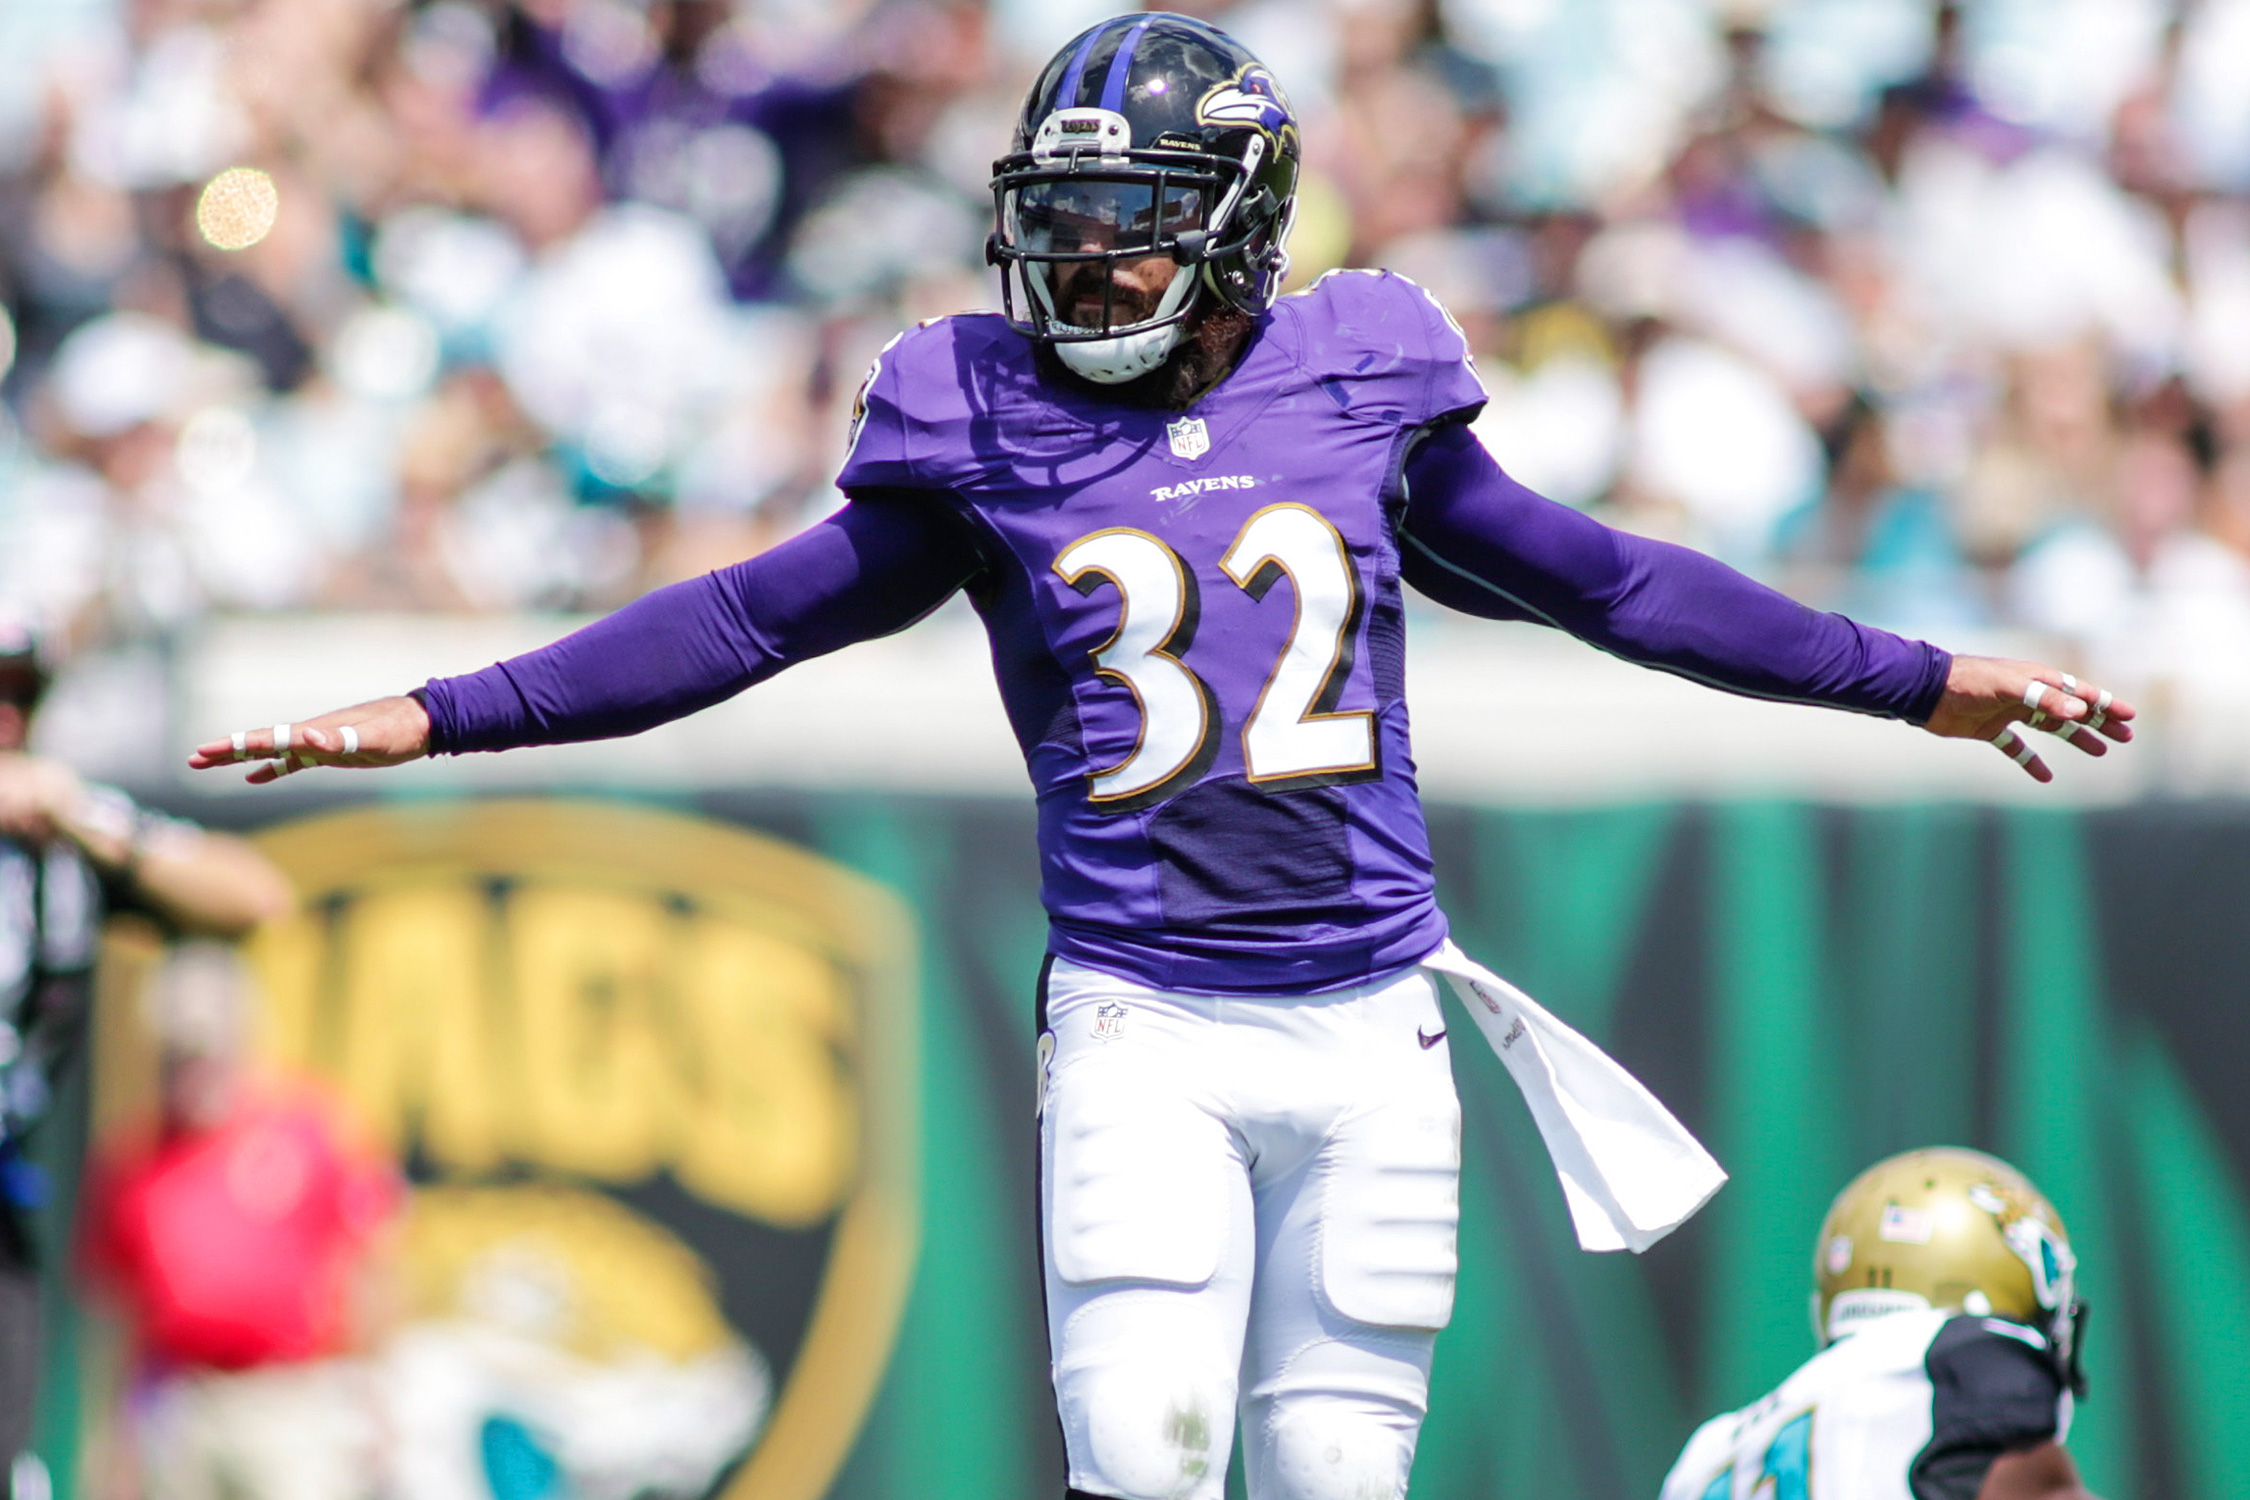 Weddle went through an ugly, public breakup with the Chargers, his long-time team, in the off-season, but he's showing them what they're missing in his new home in Baltimore. The Ravens have the No. 2 total defense in the league and the No. 5 passing defense, and Weddle has been a crucial acquisition for them.